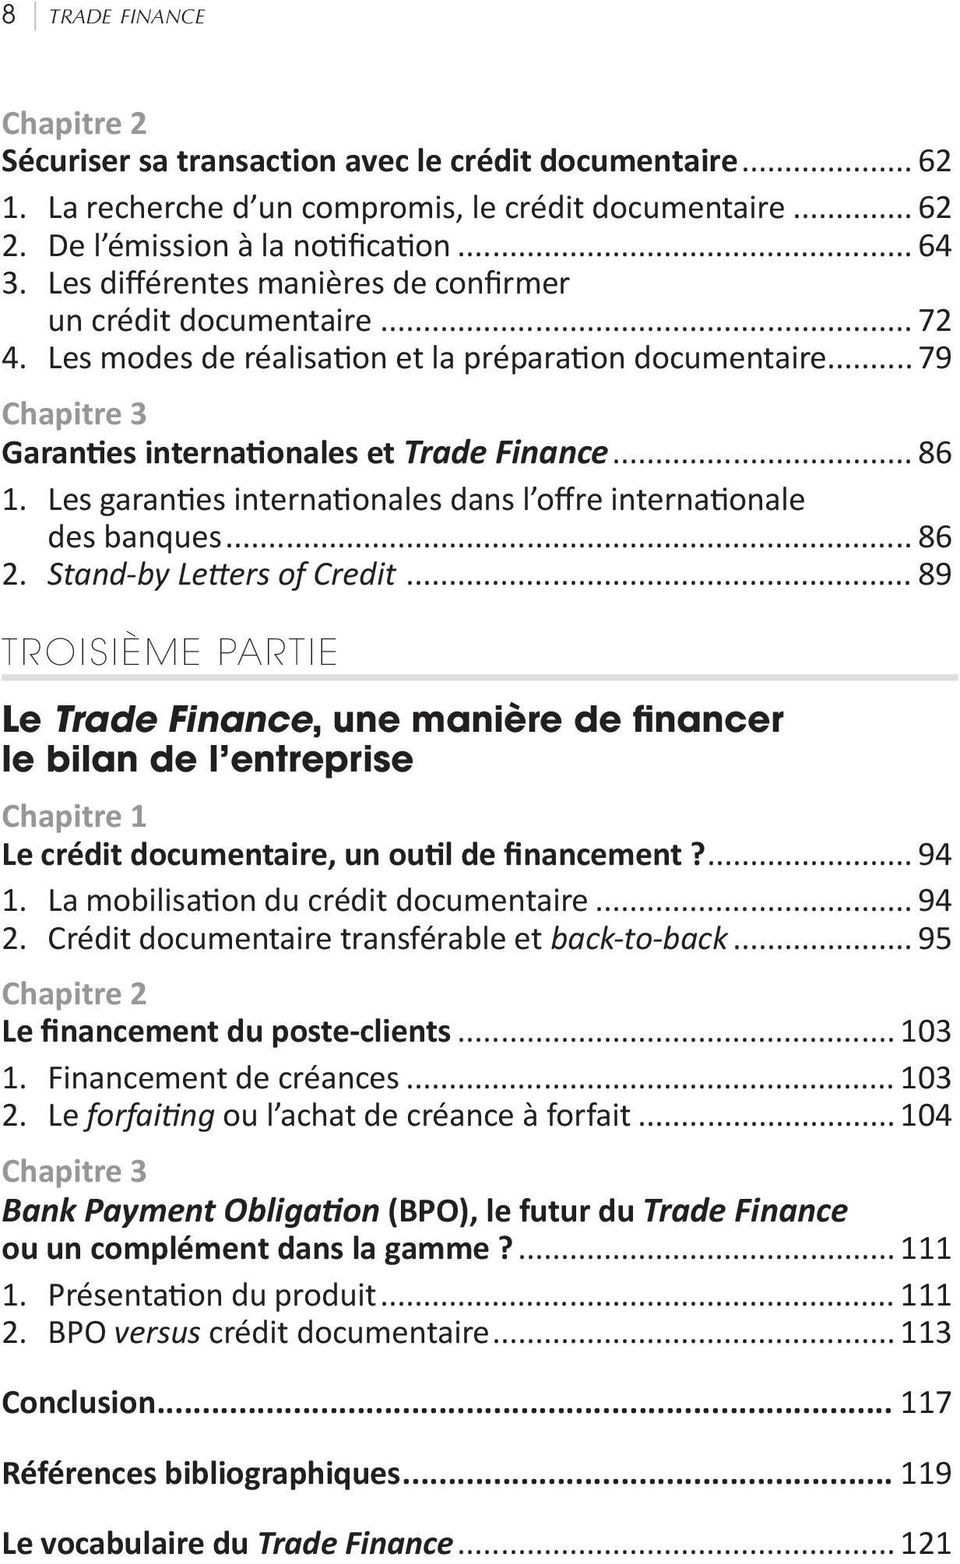 Les garanties internationales dans l offre internationale des banques... 86 2. Stand-by Letters of Credit.